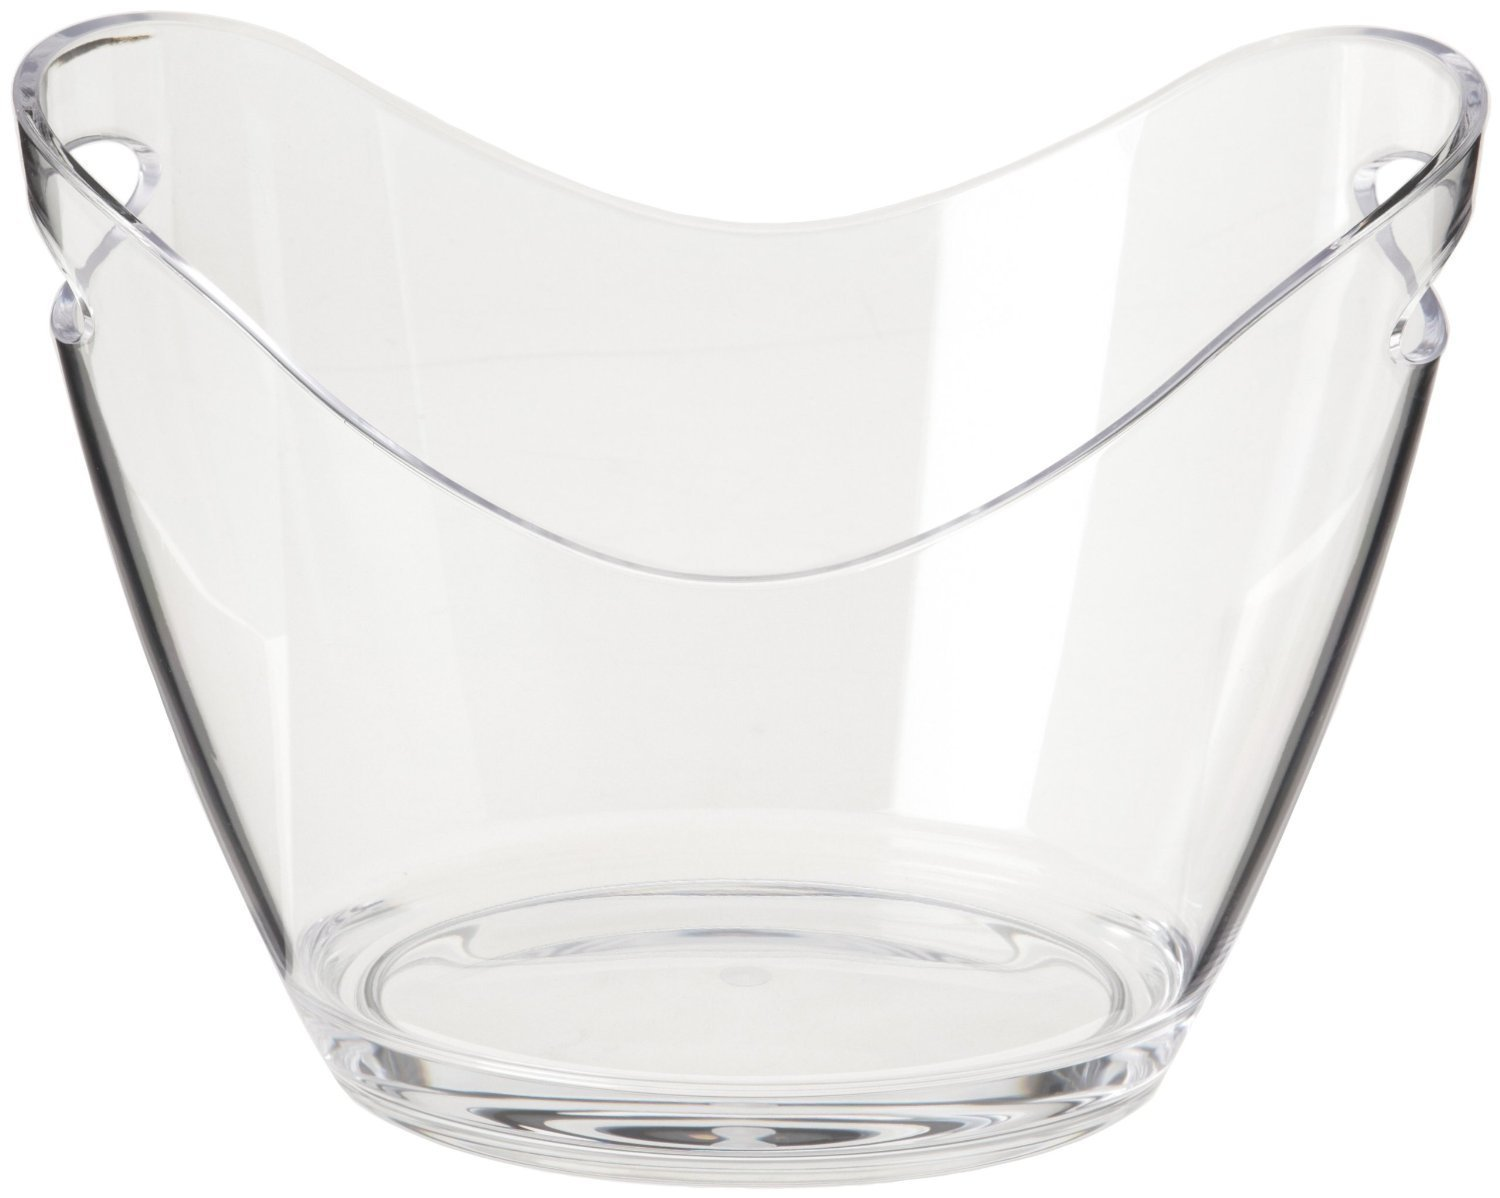 6. Agog Clear Acrylic Ice Bucket